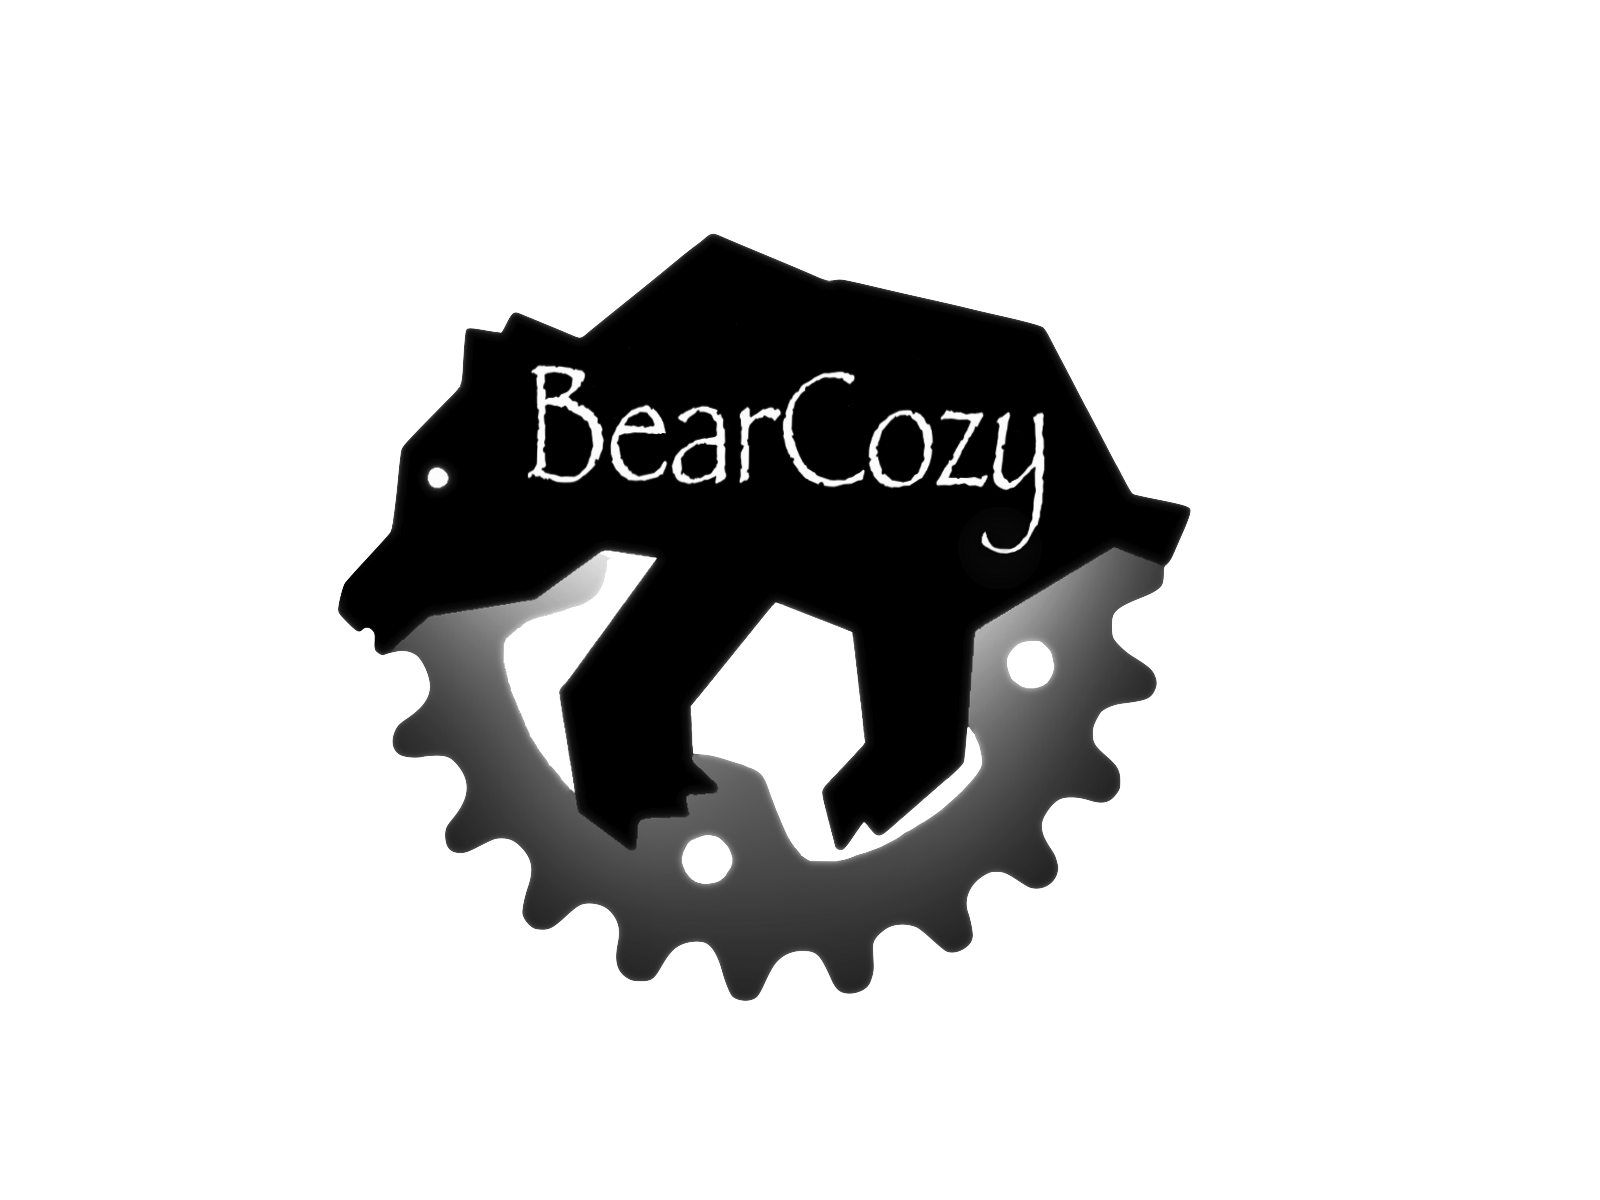 bearcozy cuoutpng copy.png